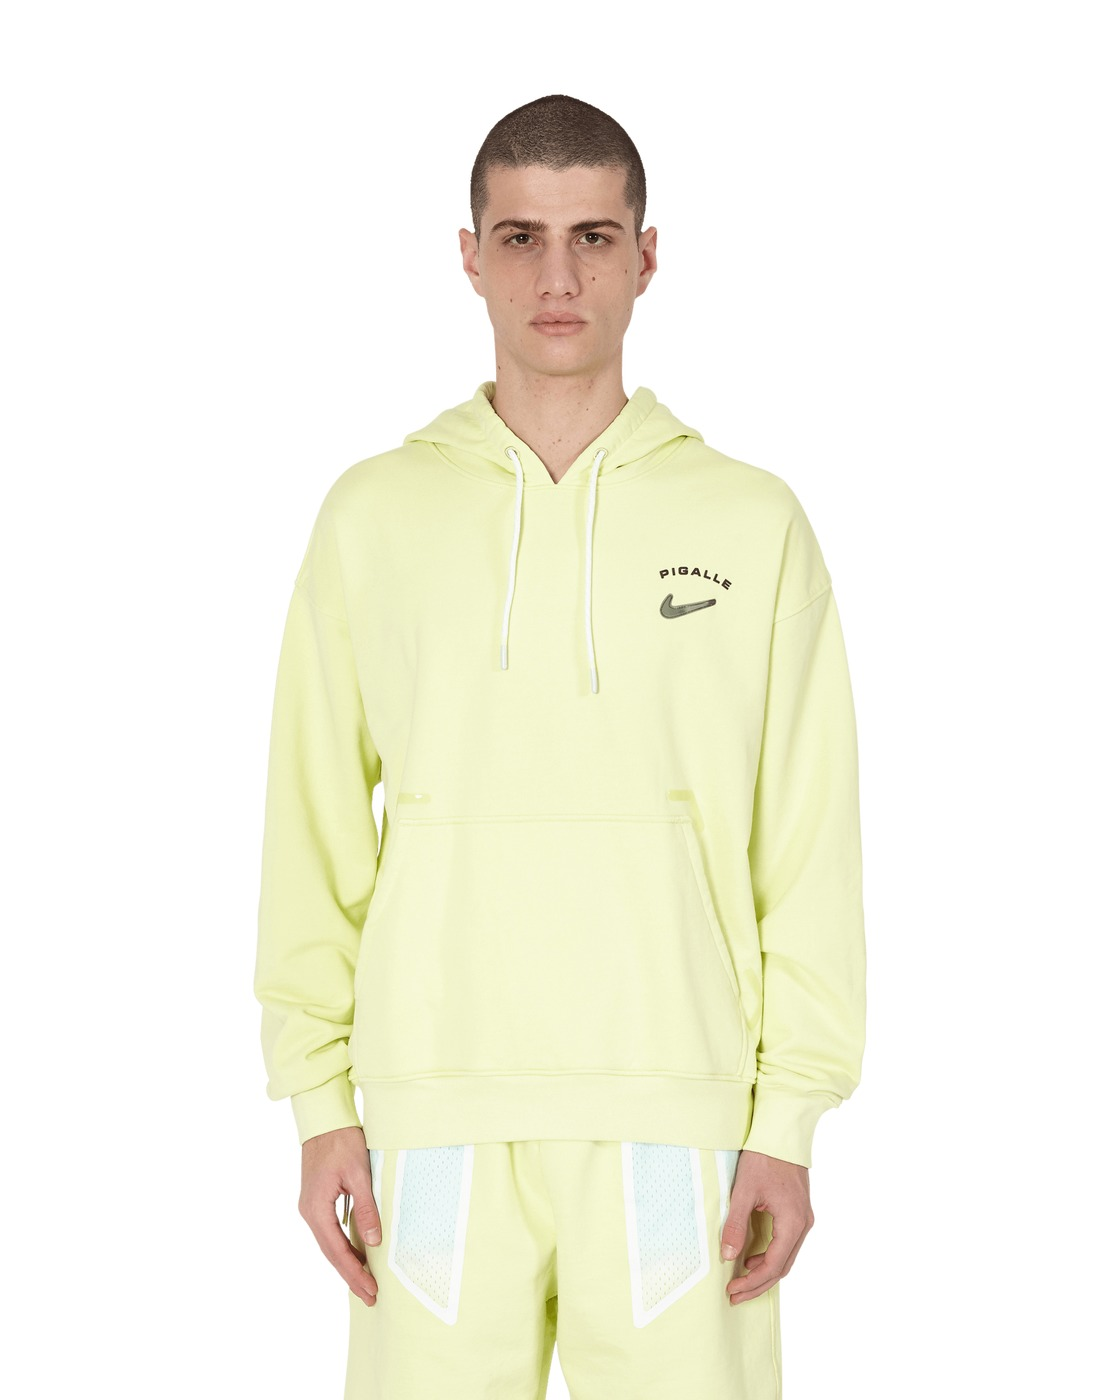 Nike Special Project Pigalle Hooded Sweatshirt Luminous Green